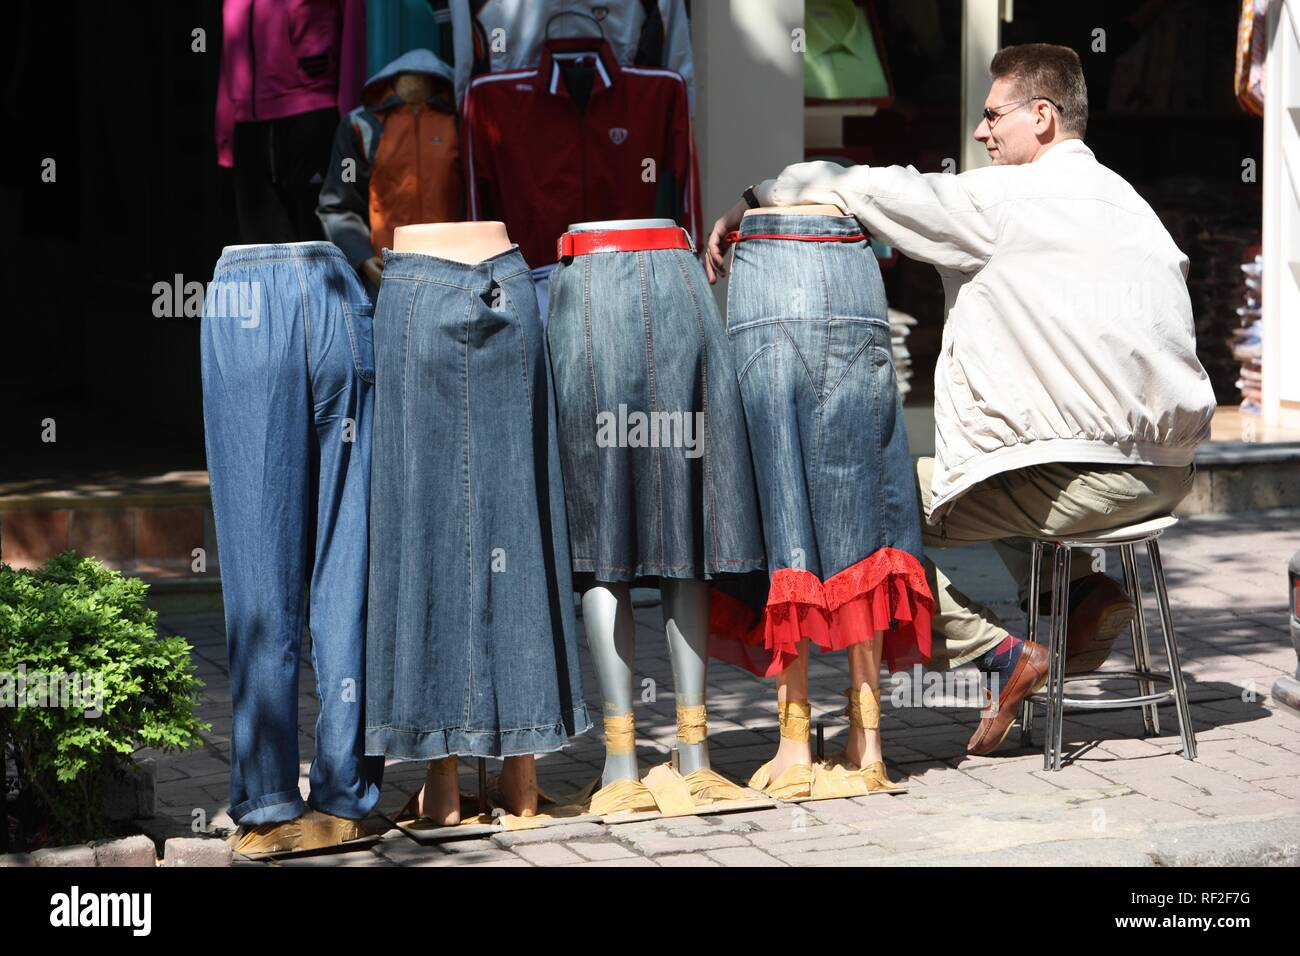 Street trader with jeans skirts on a bazar in Sultanahmet, Istanbul, Turkey - Stock Image